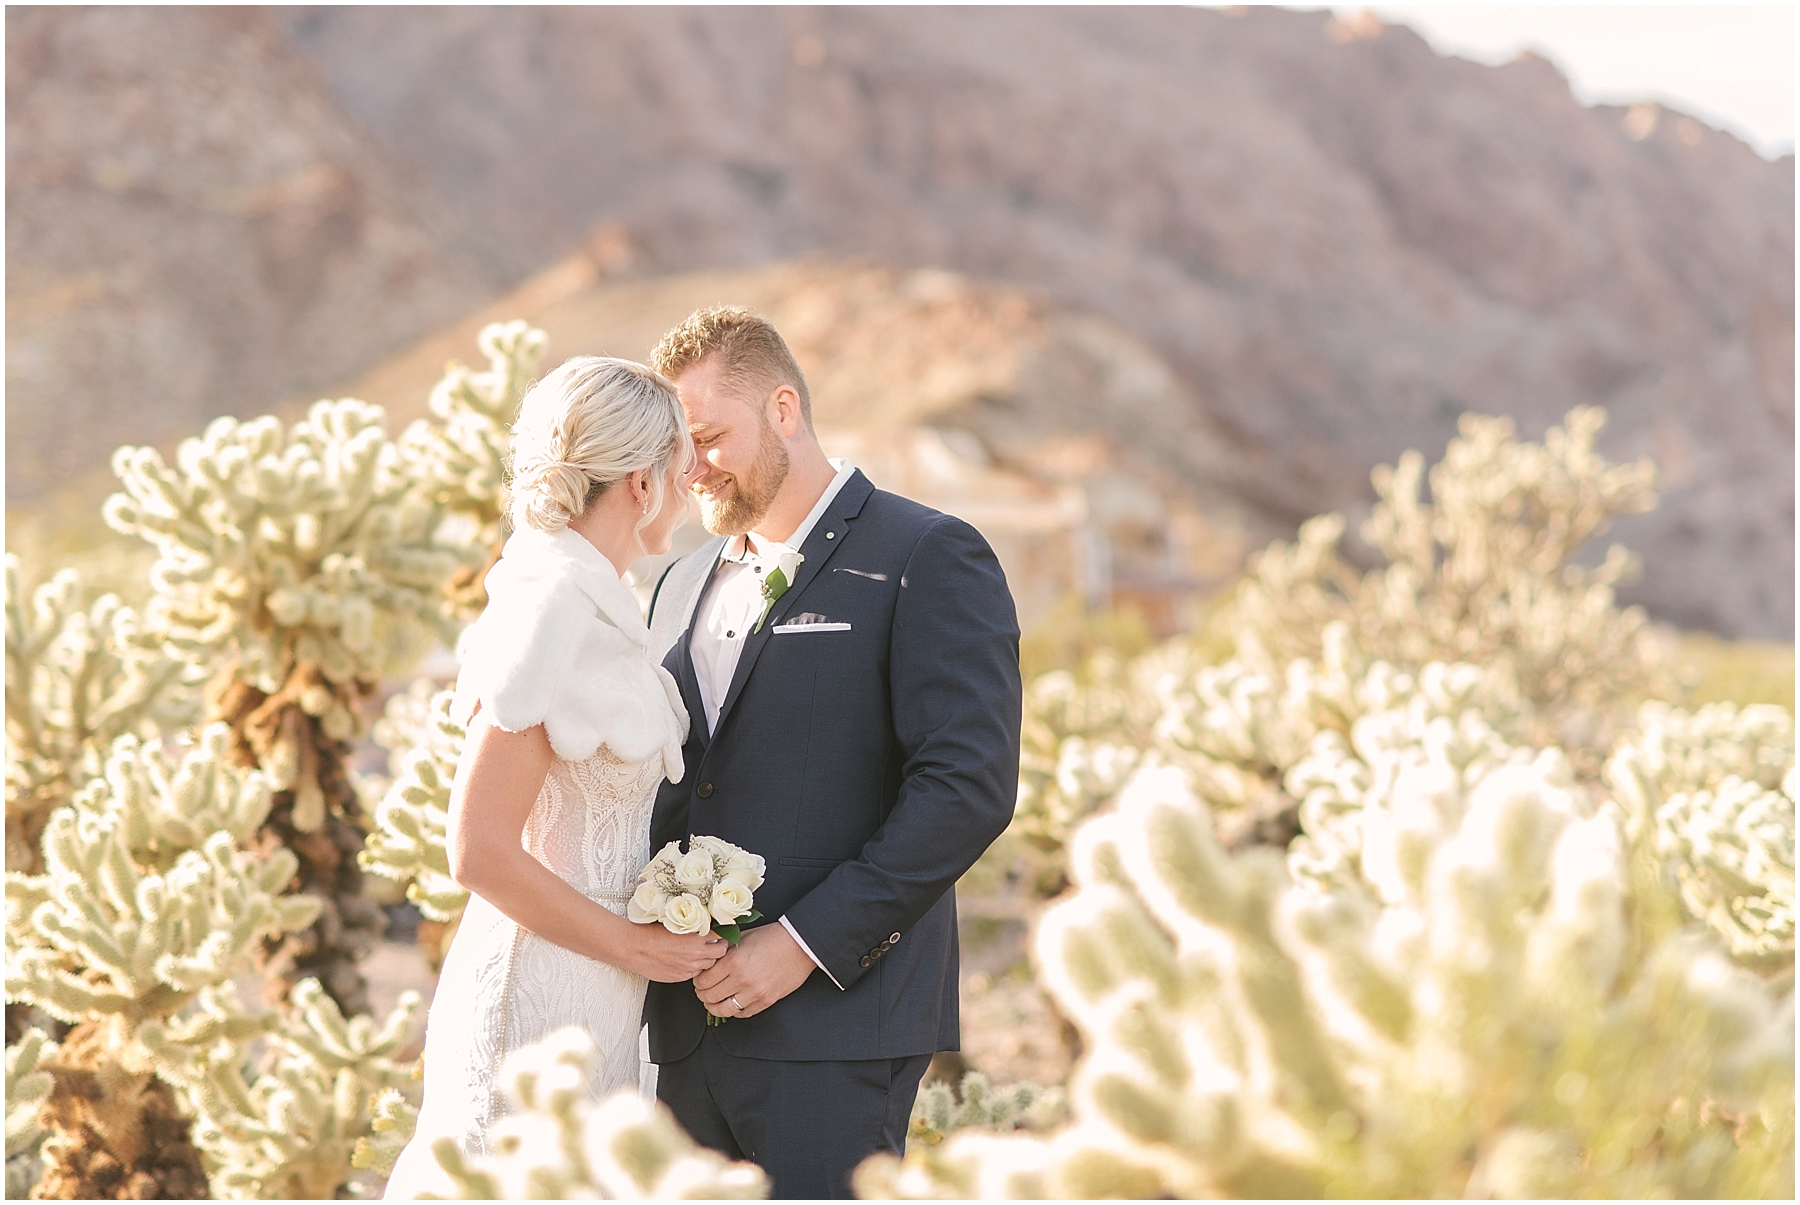 dry_lake_bed_nelson__las_vegas_elopement_photography_blog-01.jpg